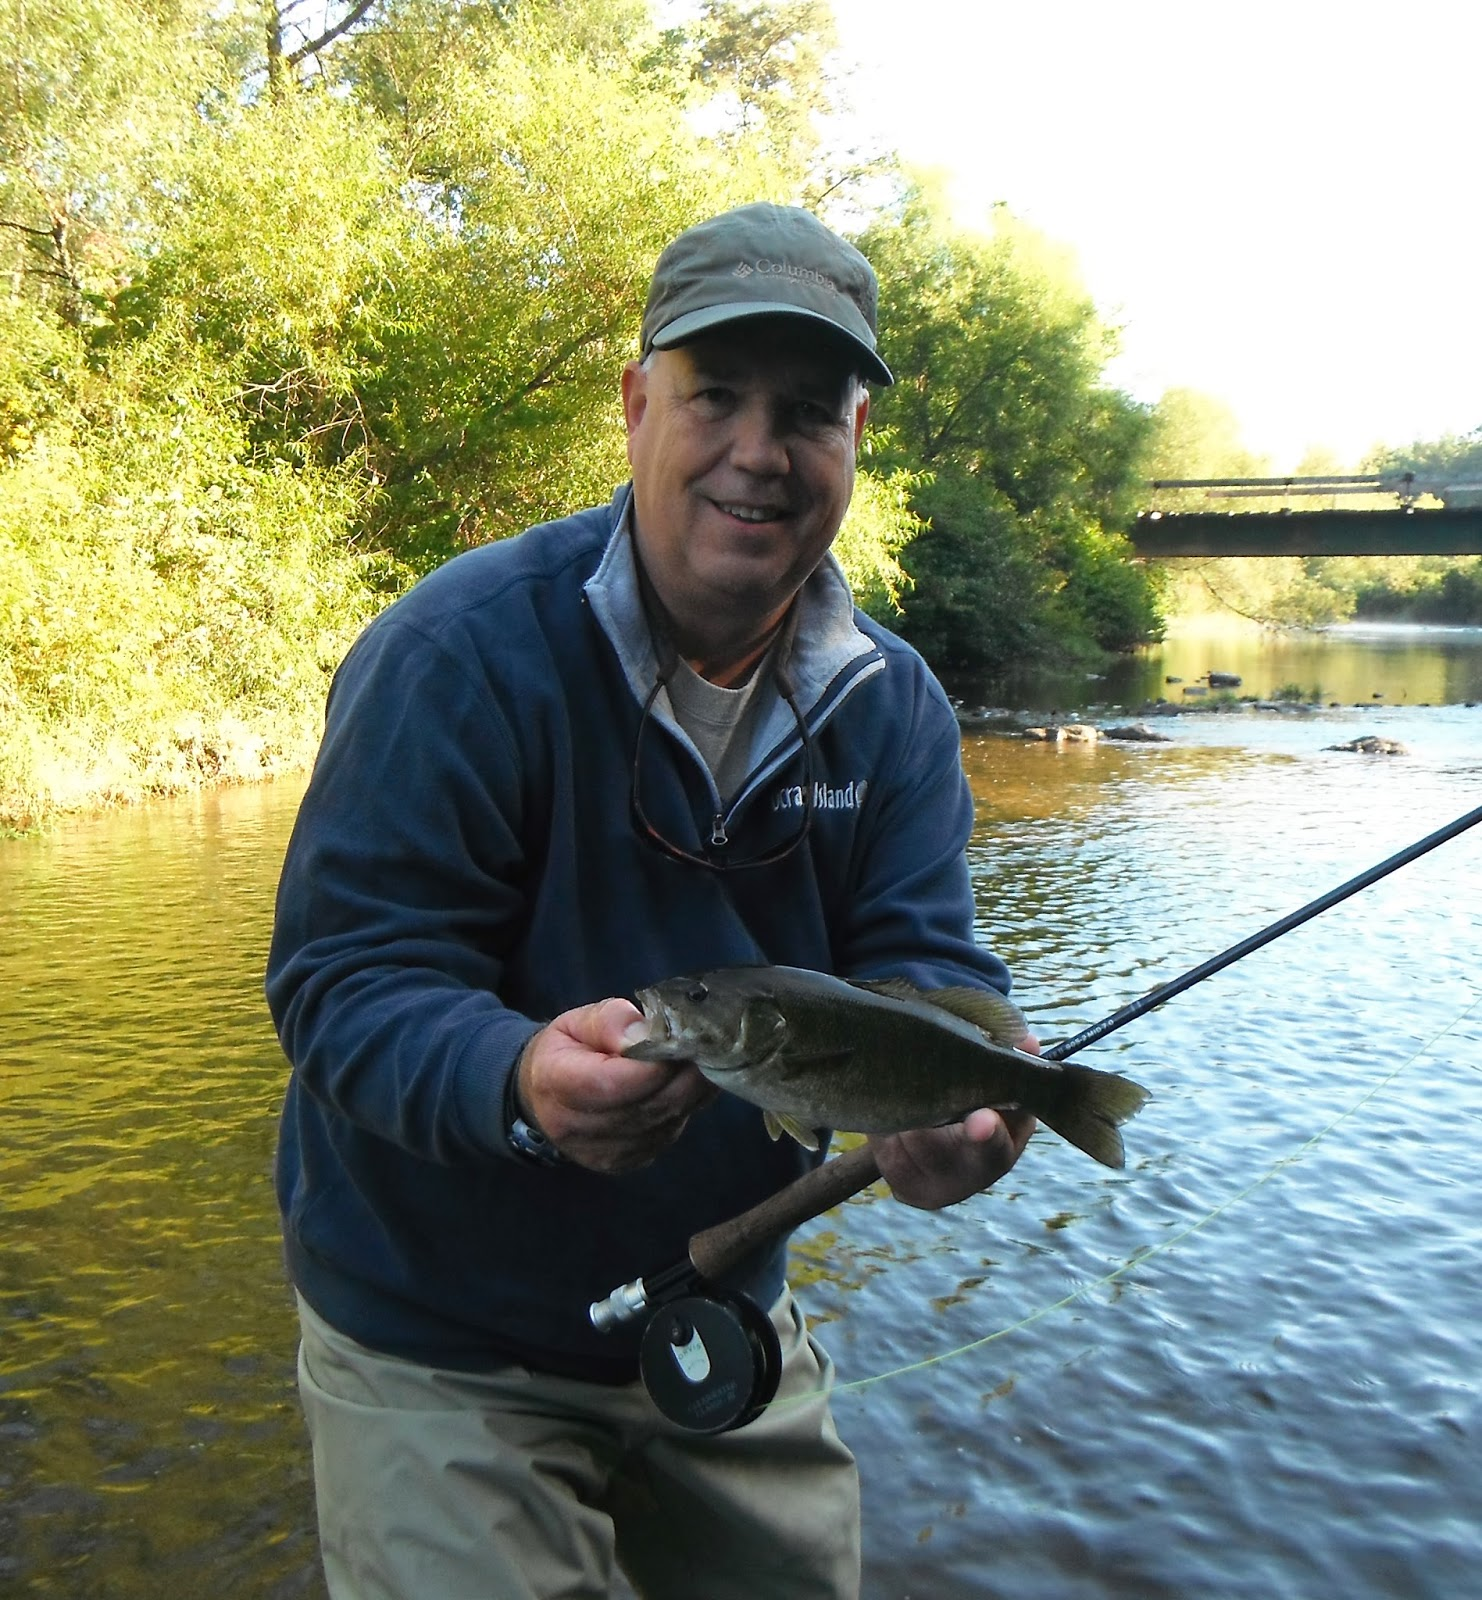 Western maryland fly fishing casselman river over the weekend for Md trout fishing